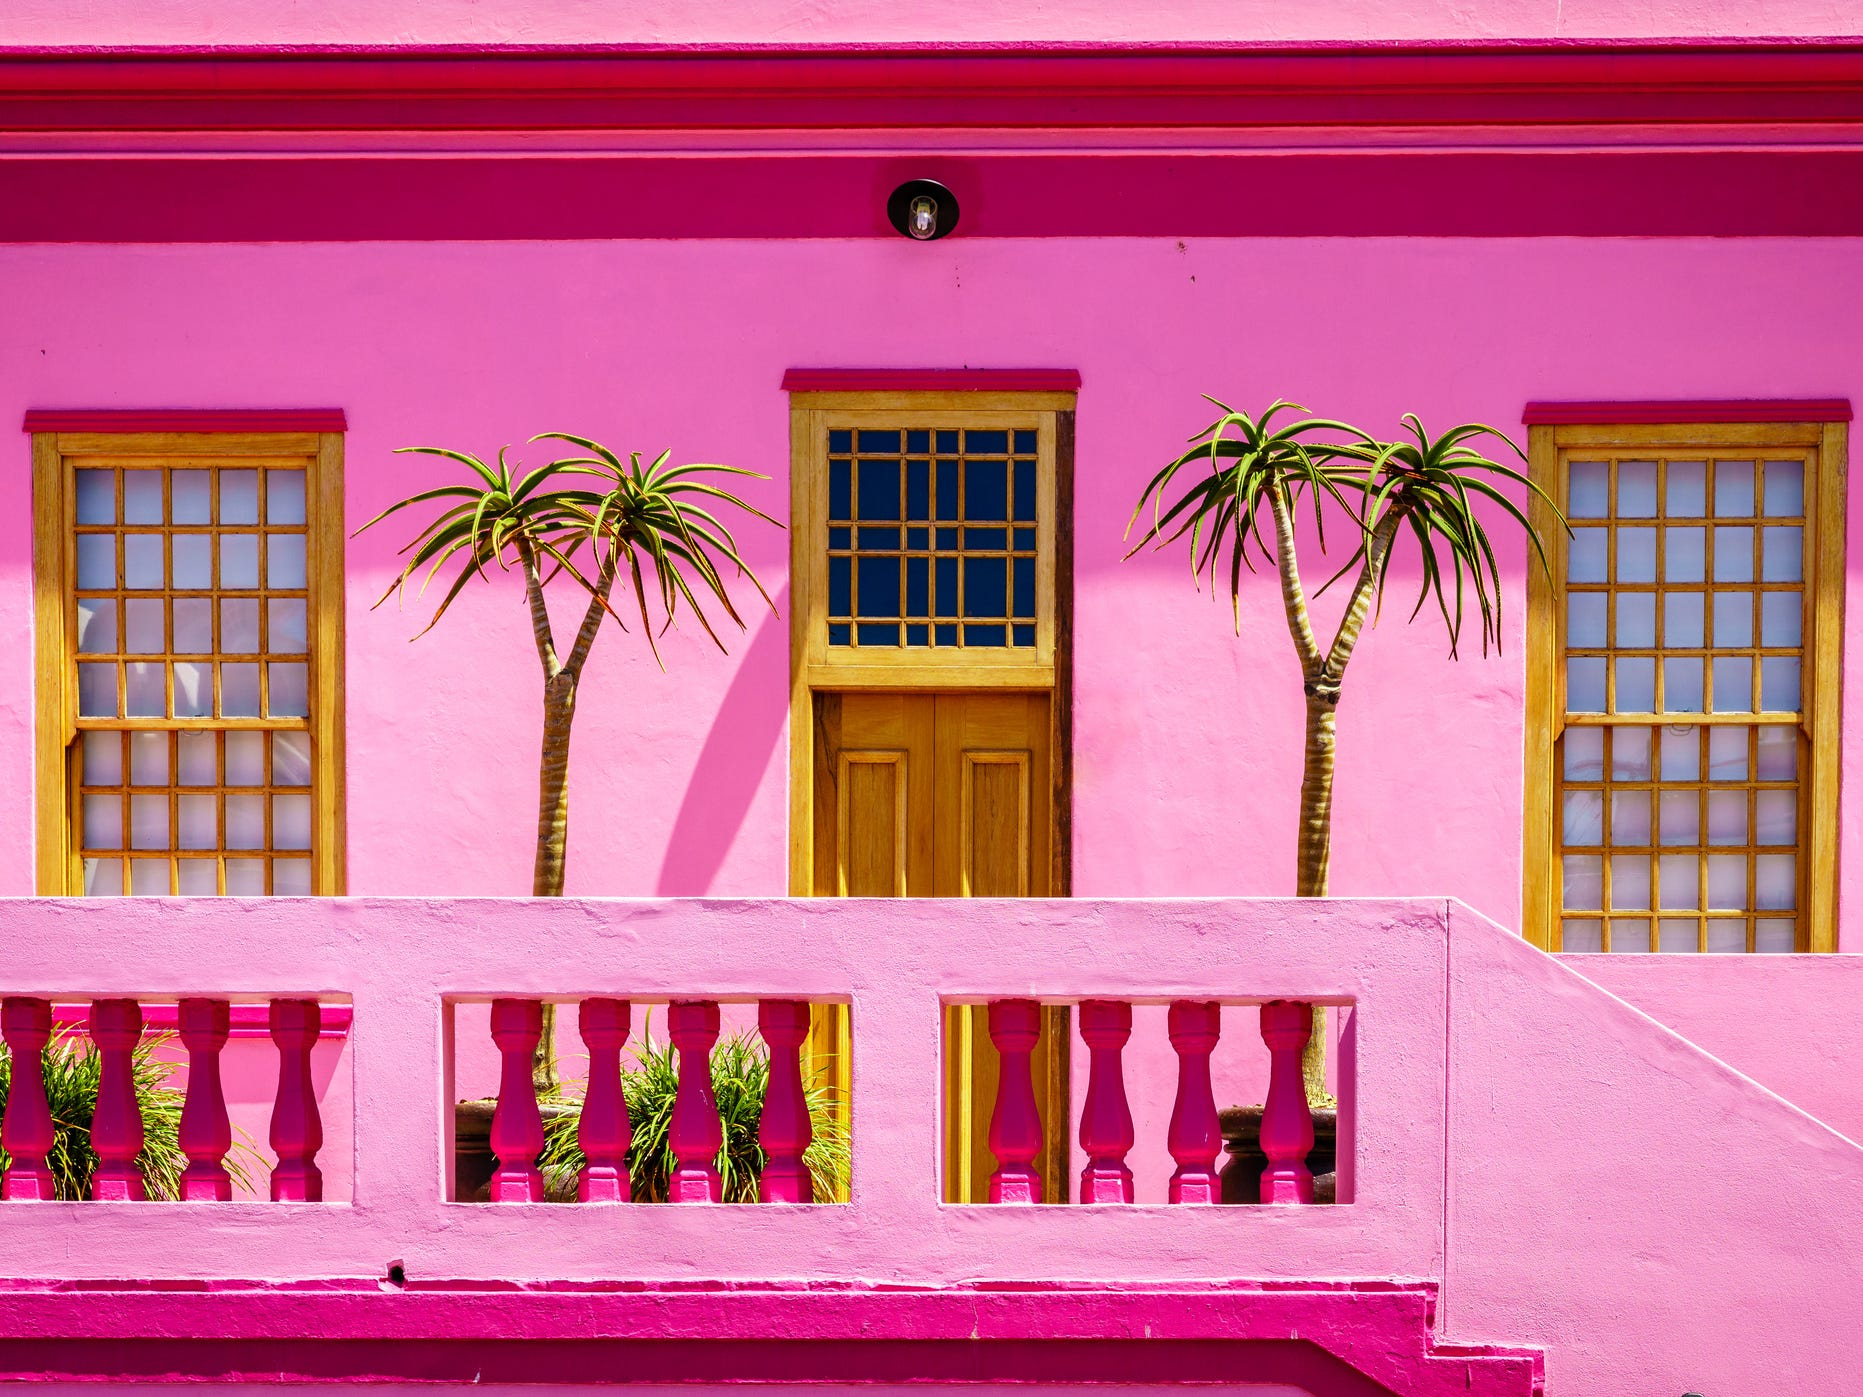 Later, when slaves were given the freedom to buy their homes, they celebrated their liberty by painting their houses the vibrant colors visitors can see today.